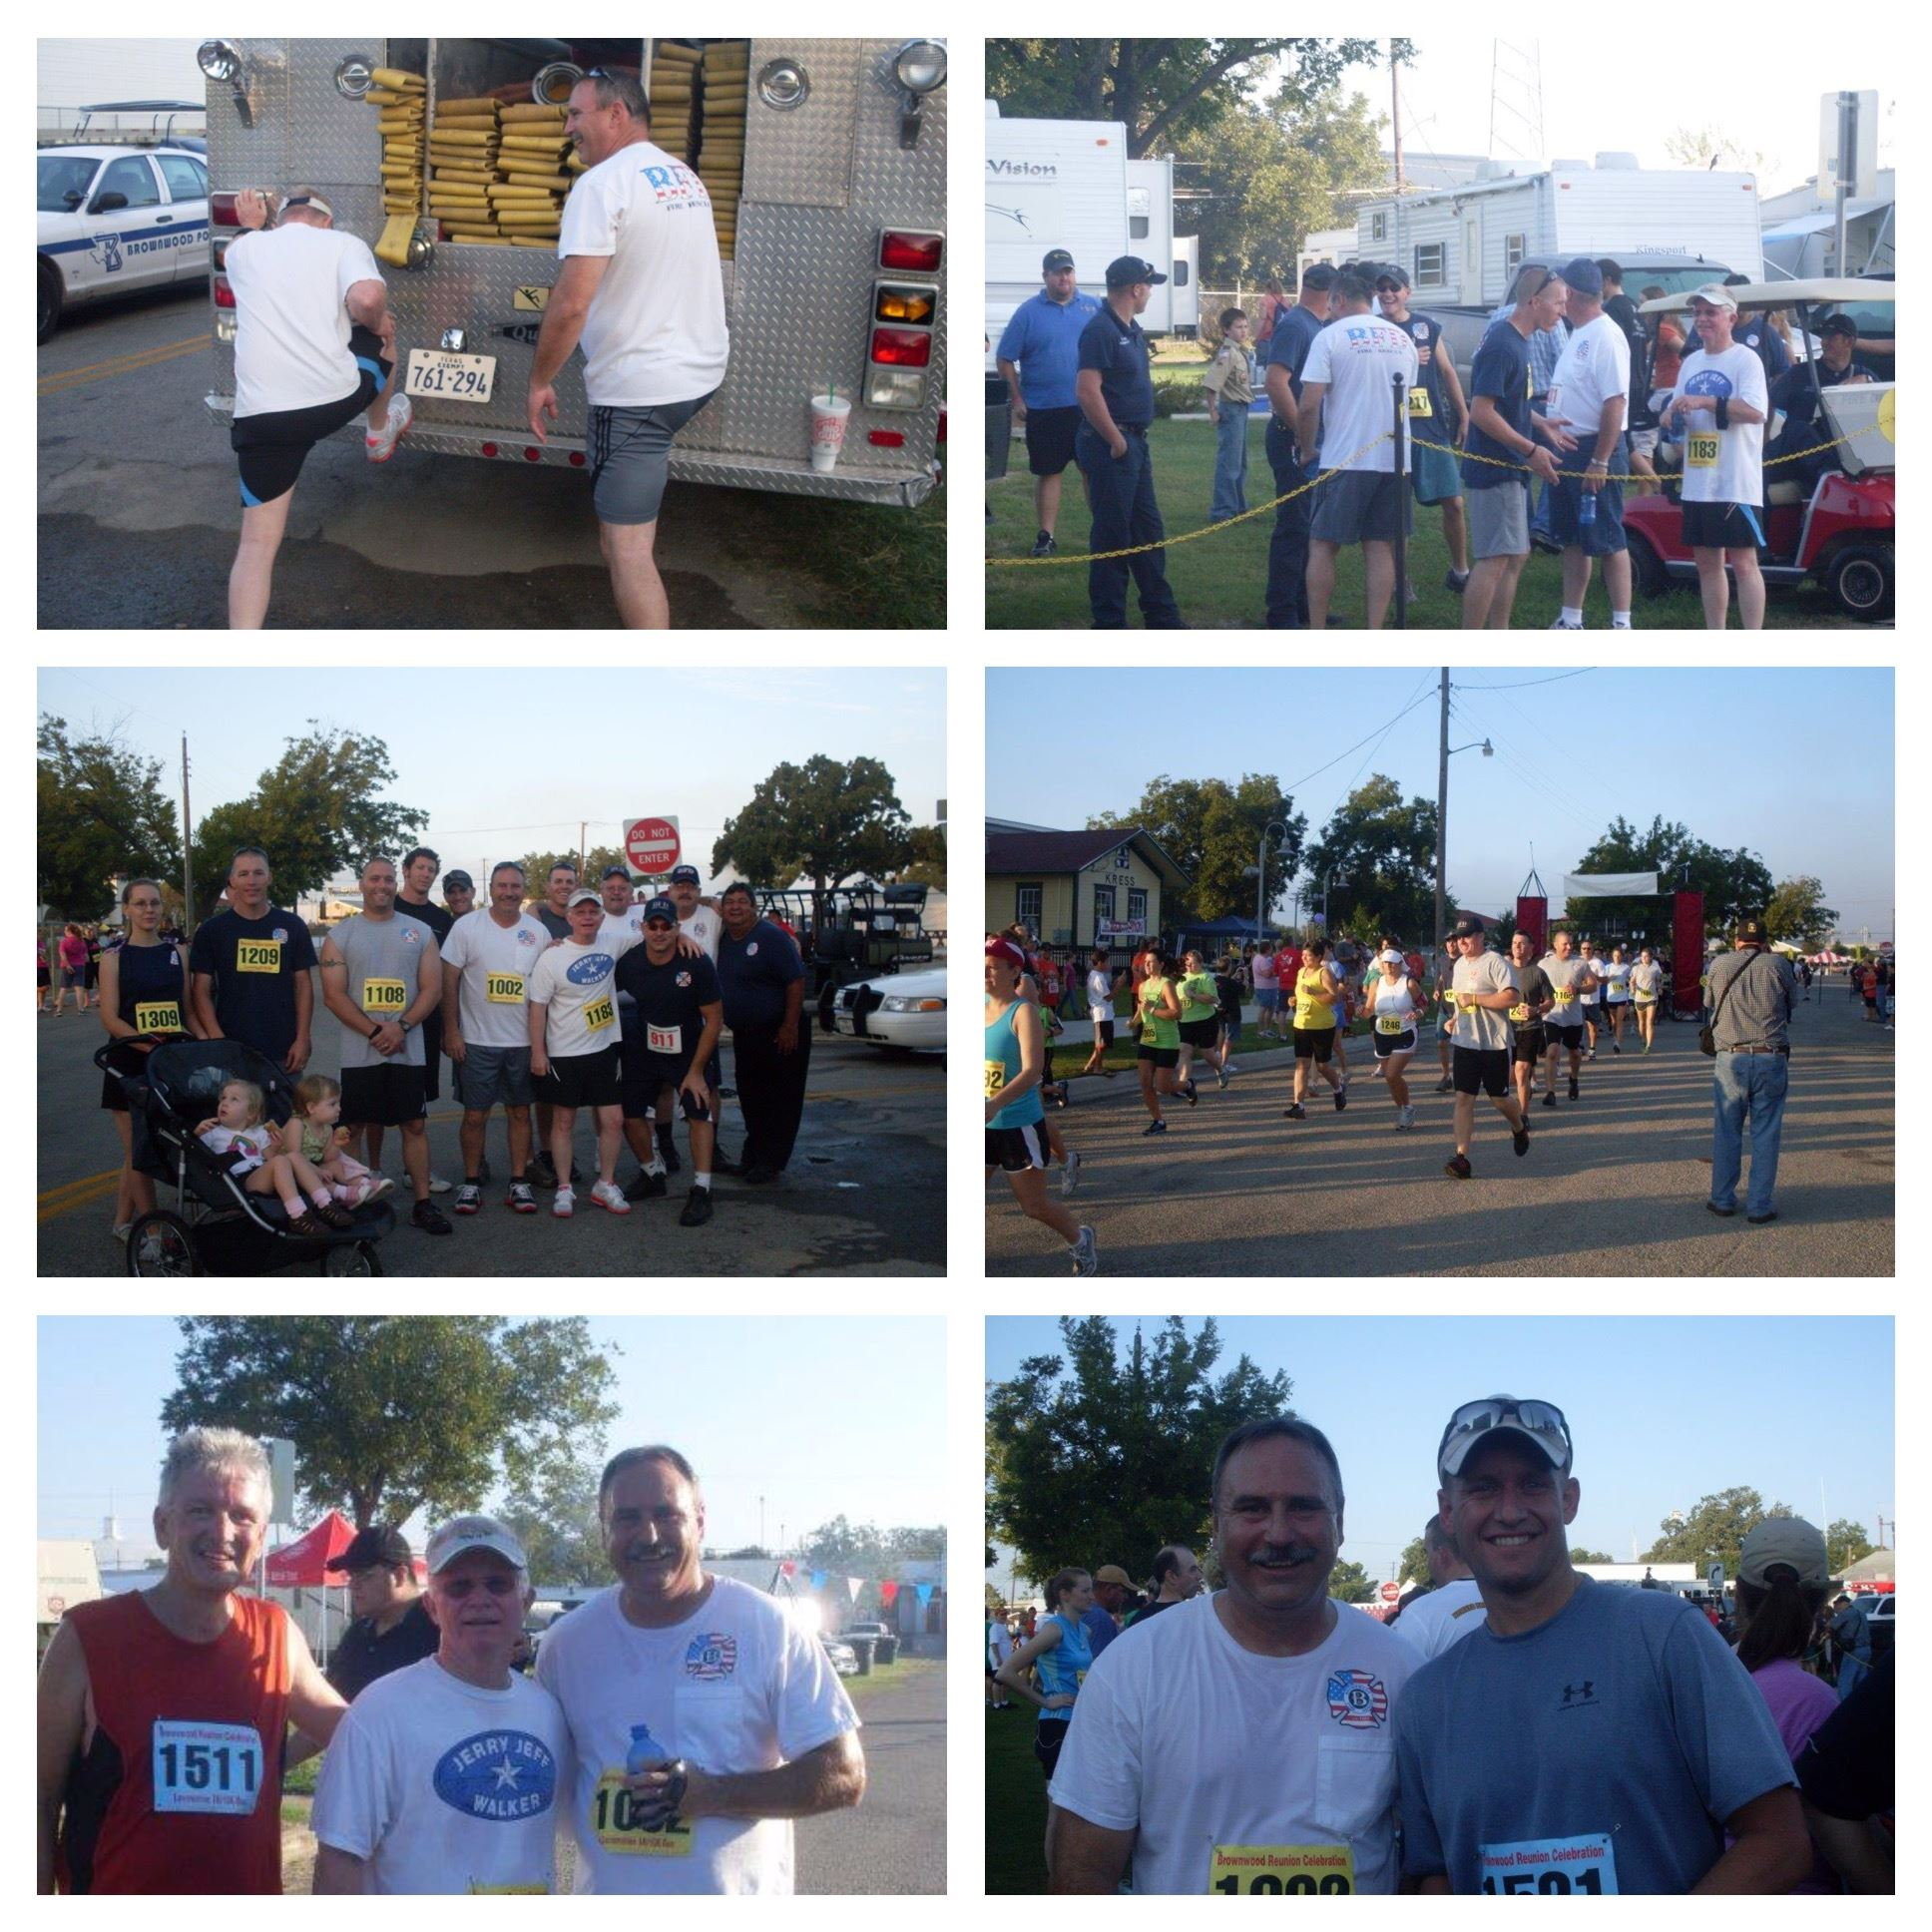 Reunion Run Collage 2010 submitted by Melanie Larose